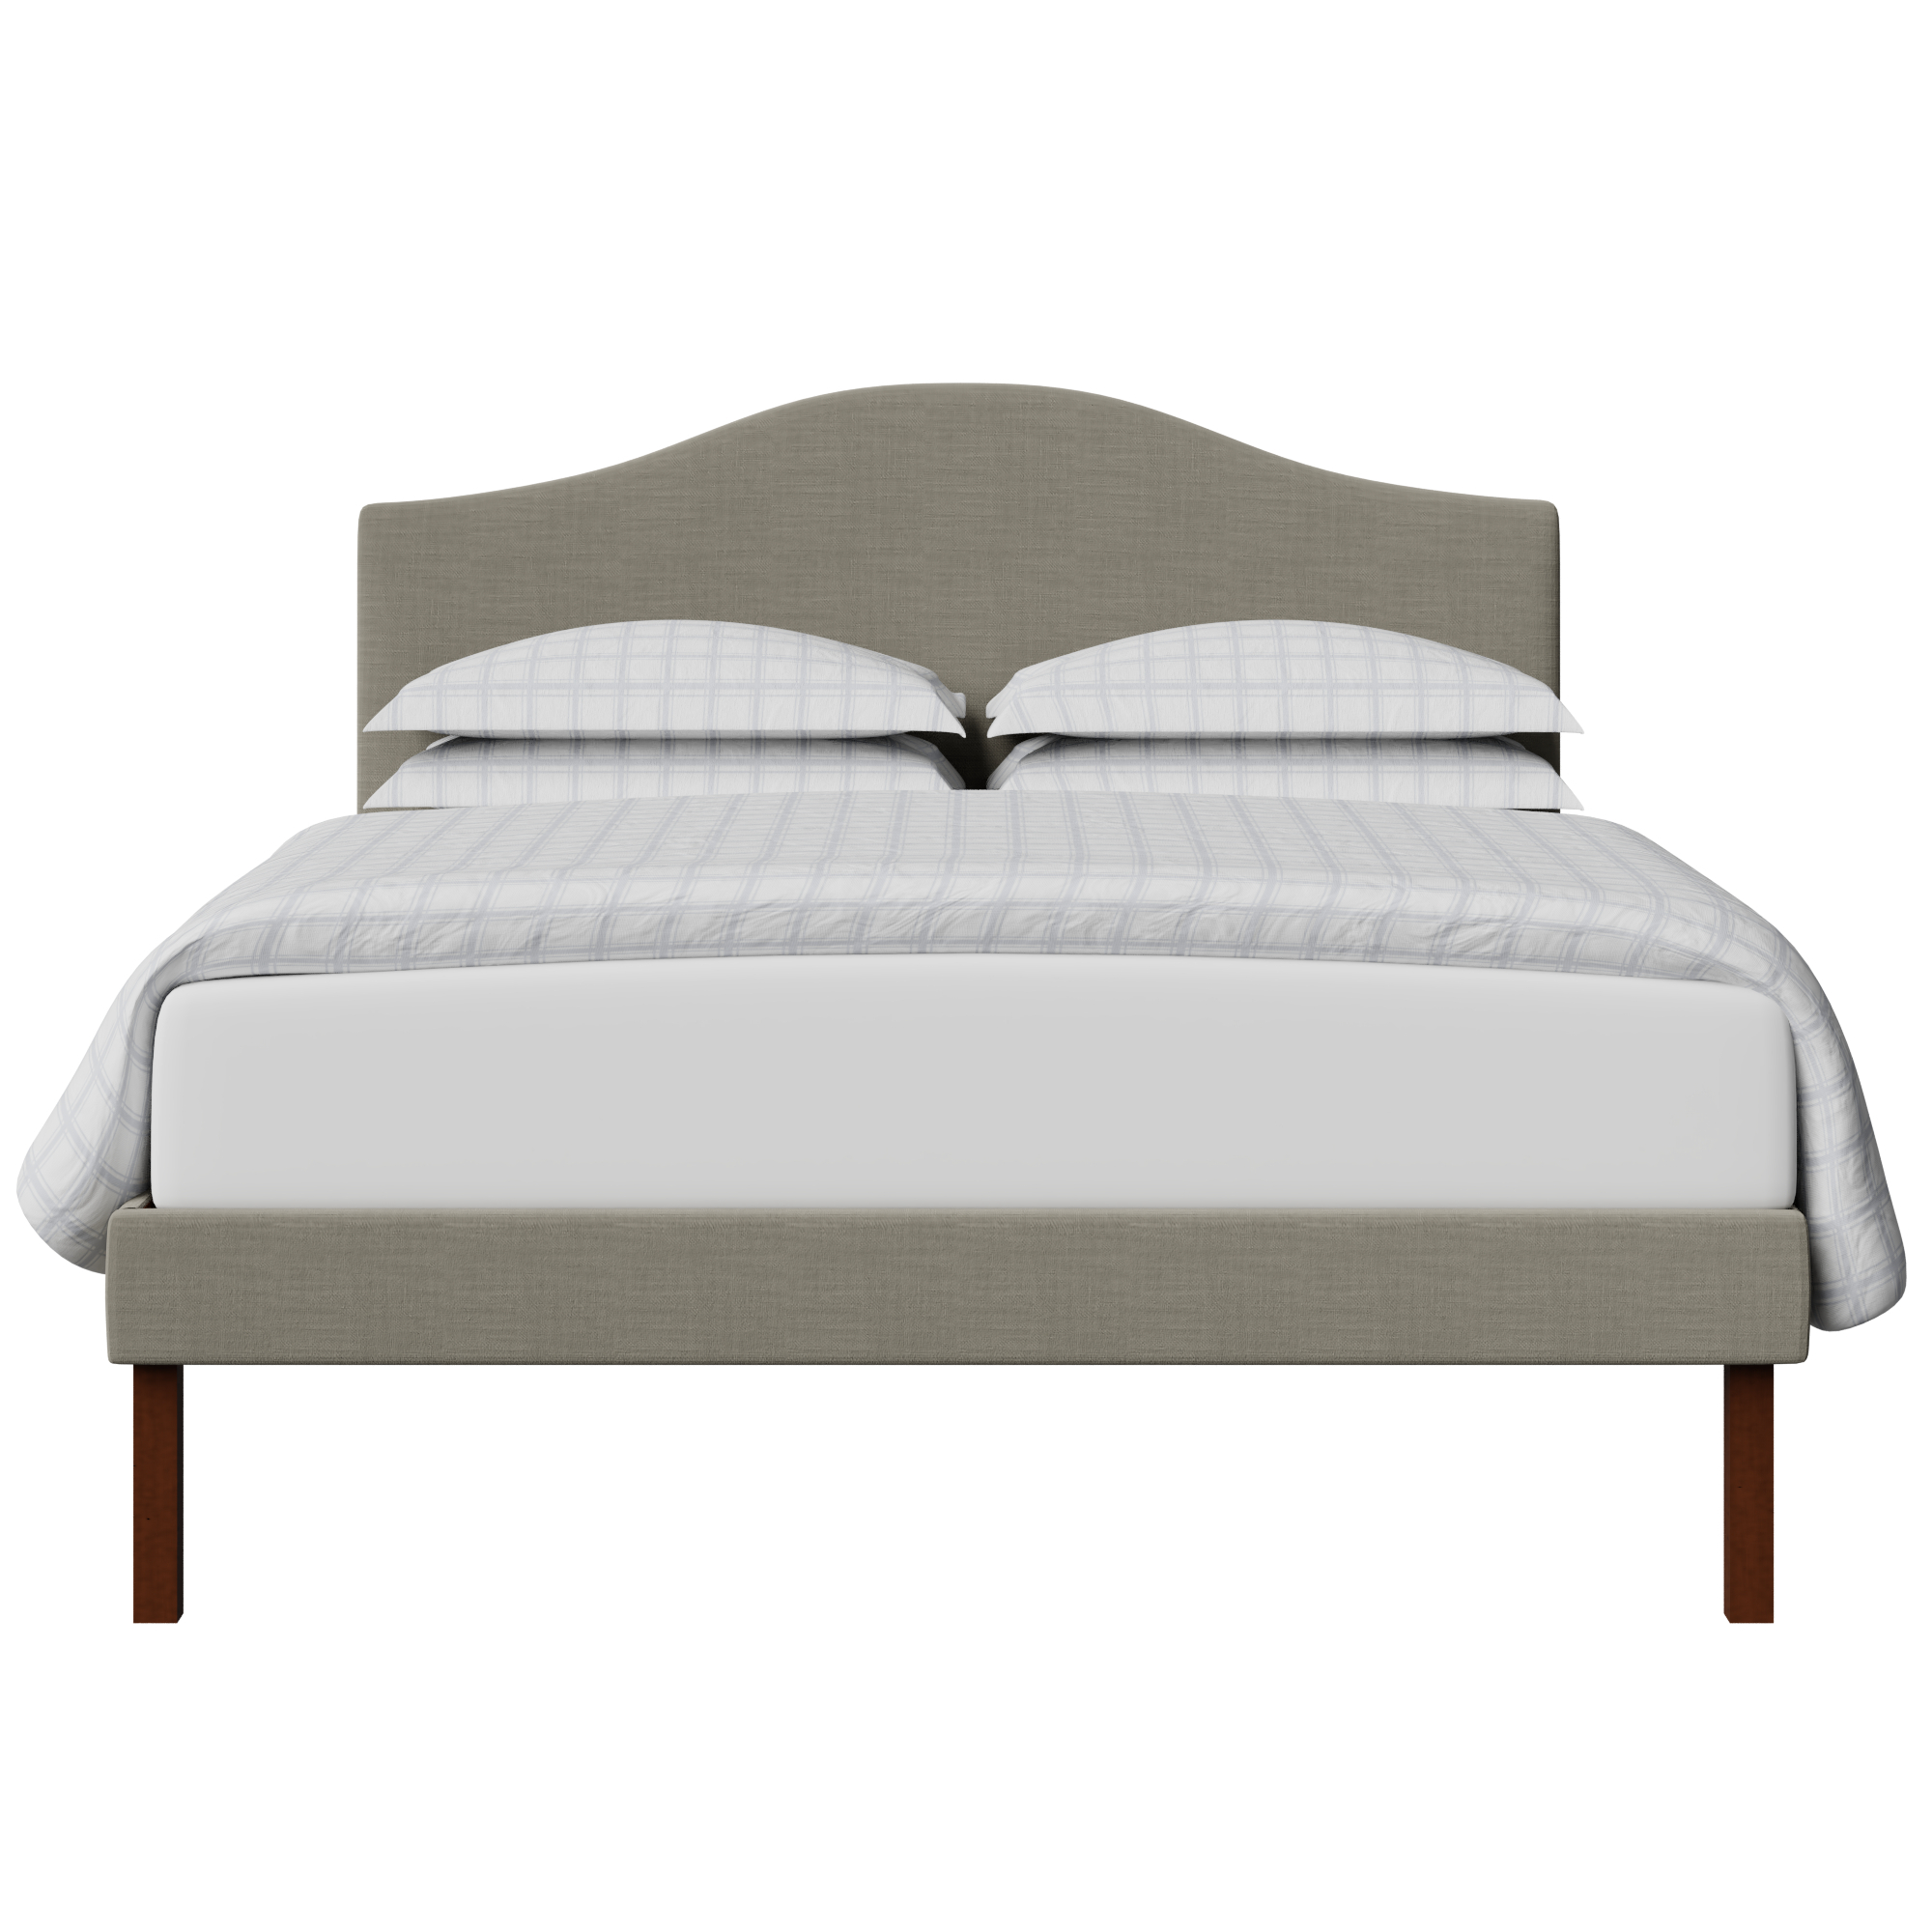 Yoshida Upholstered upholstered bed in grey fabric